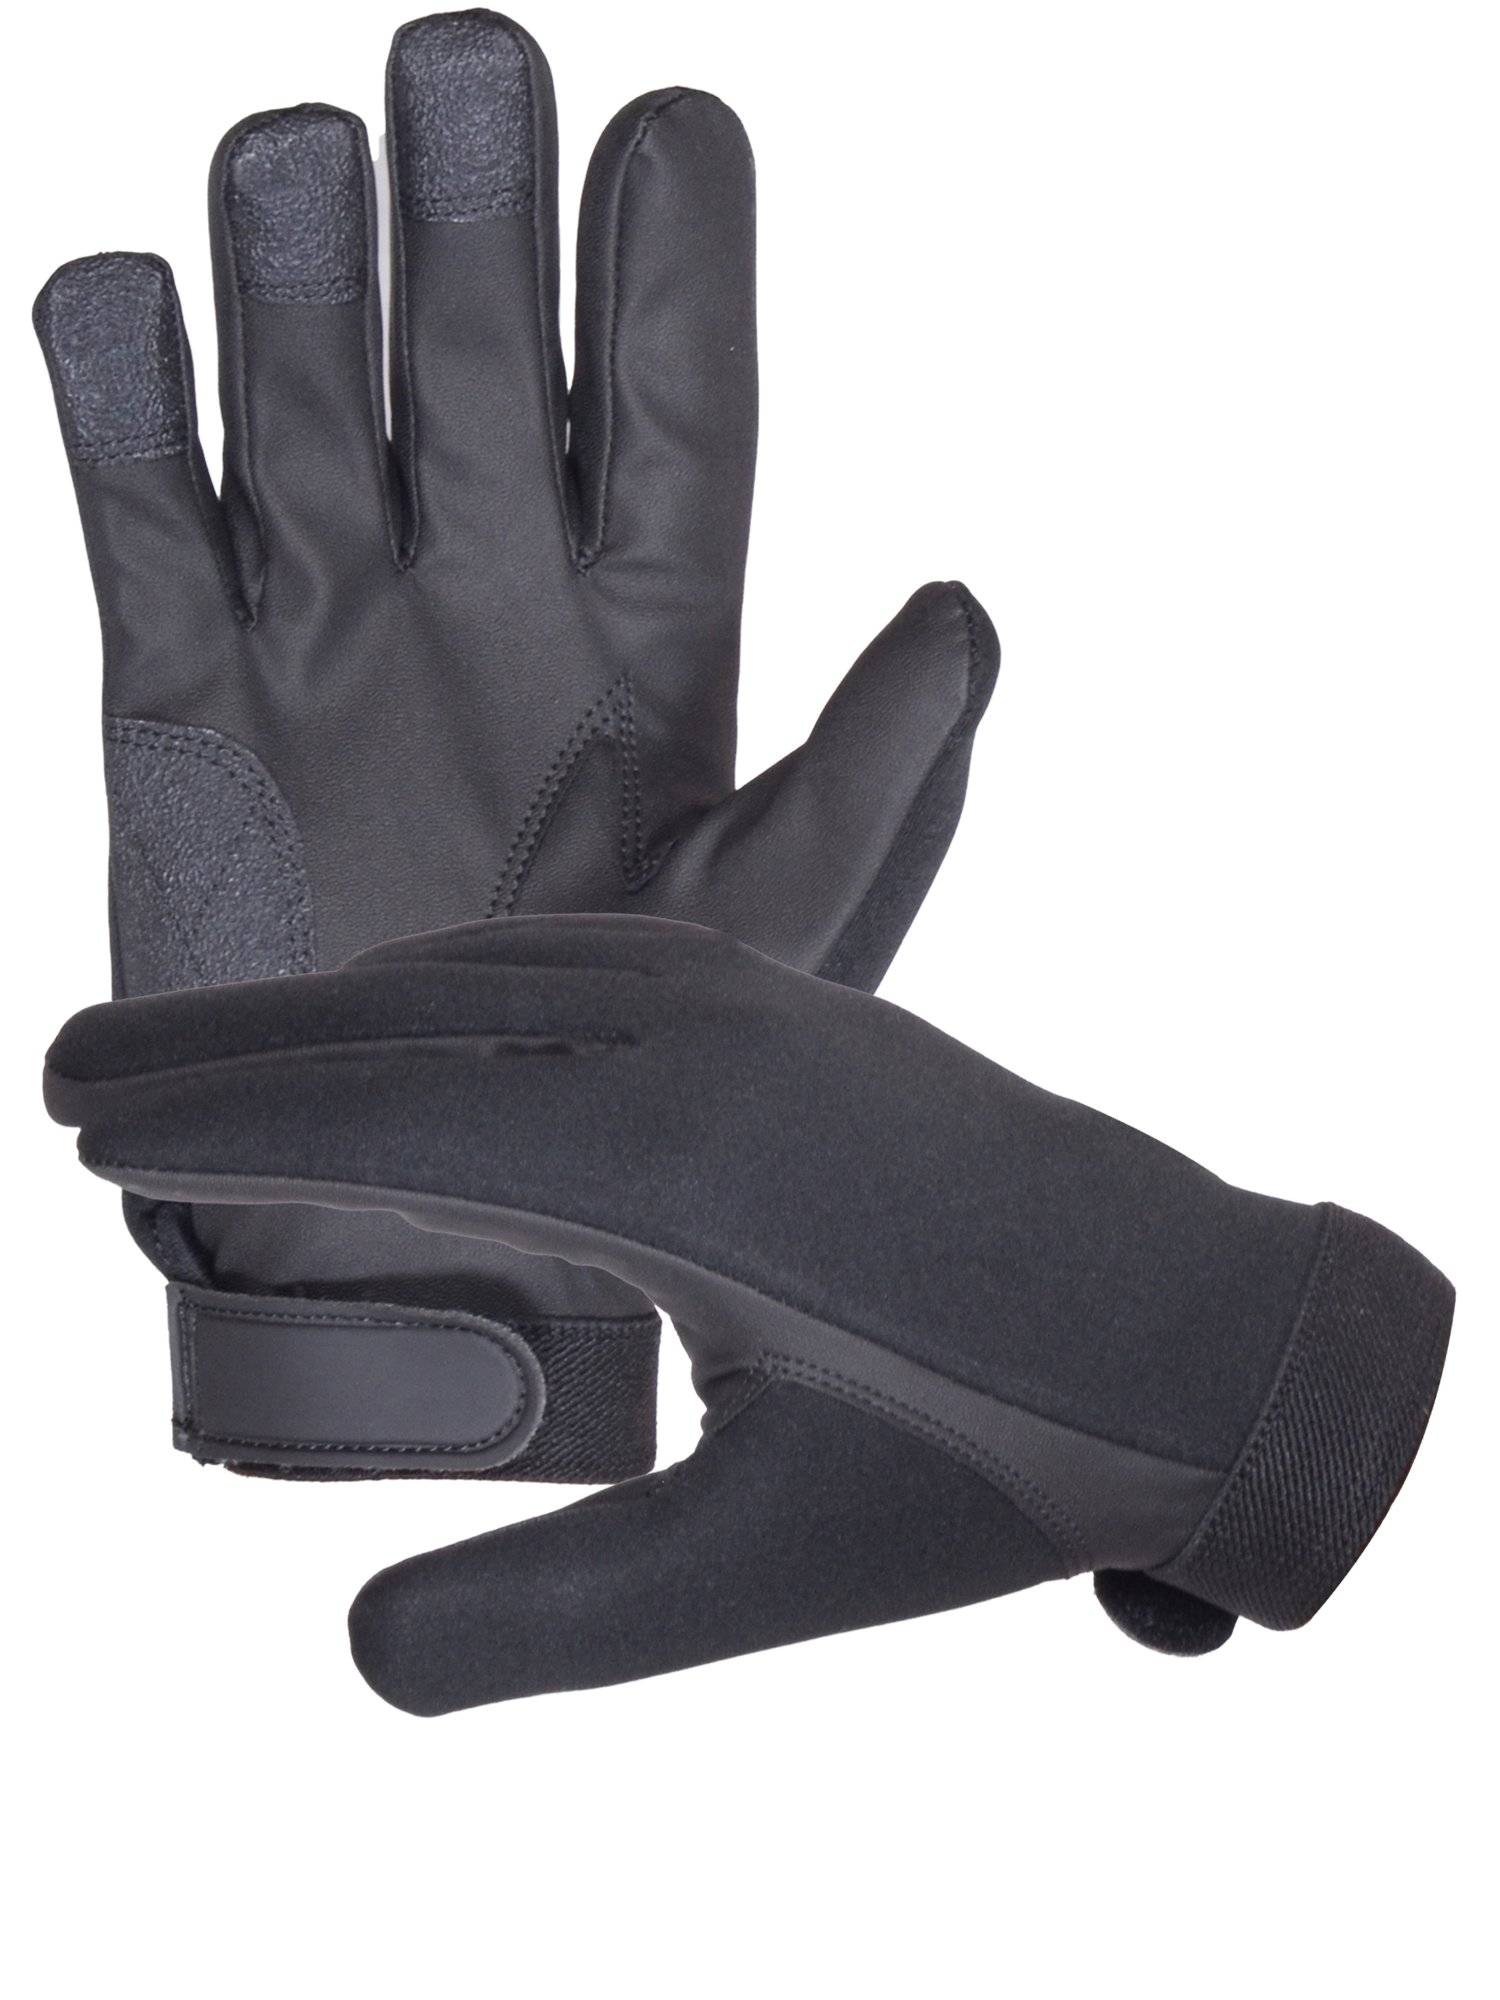 Neoprene Police Search Shooting Tactical gloves (Large)